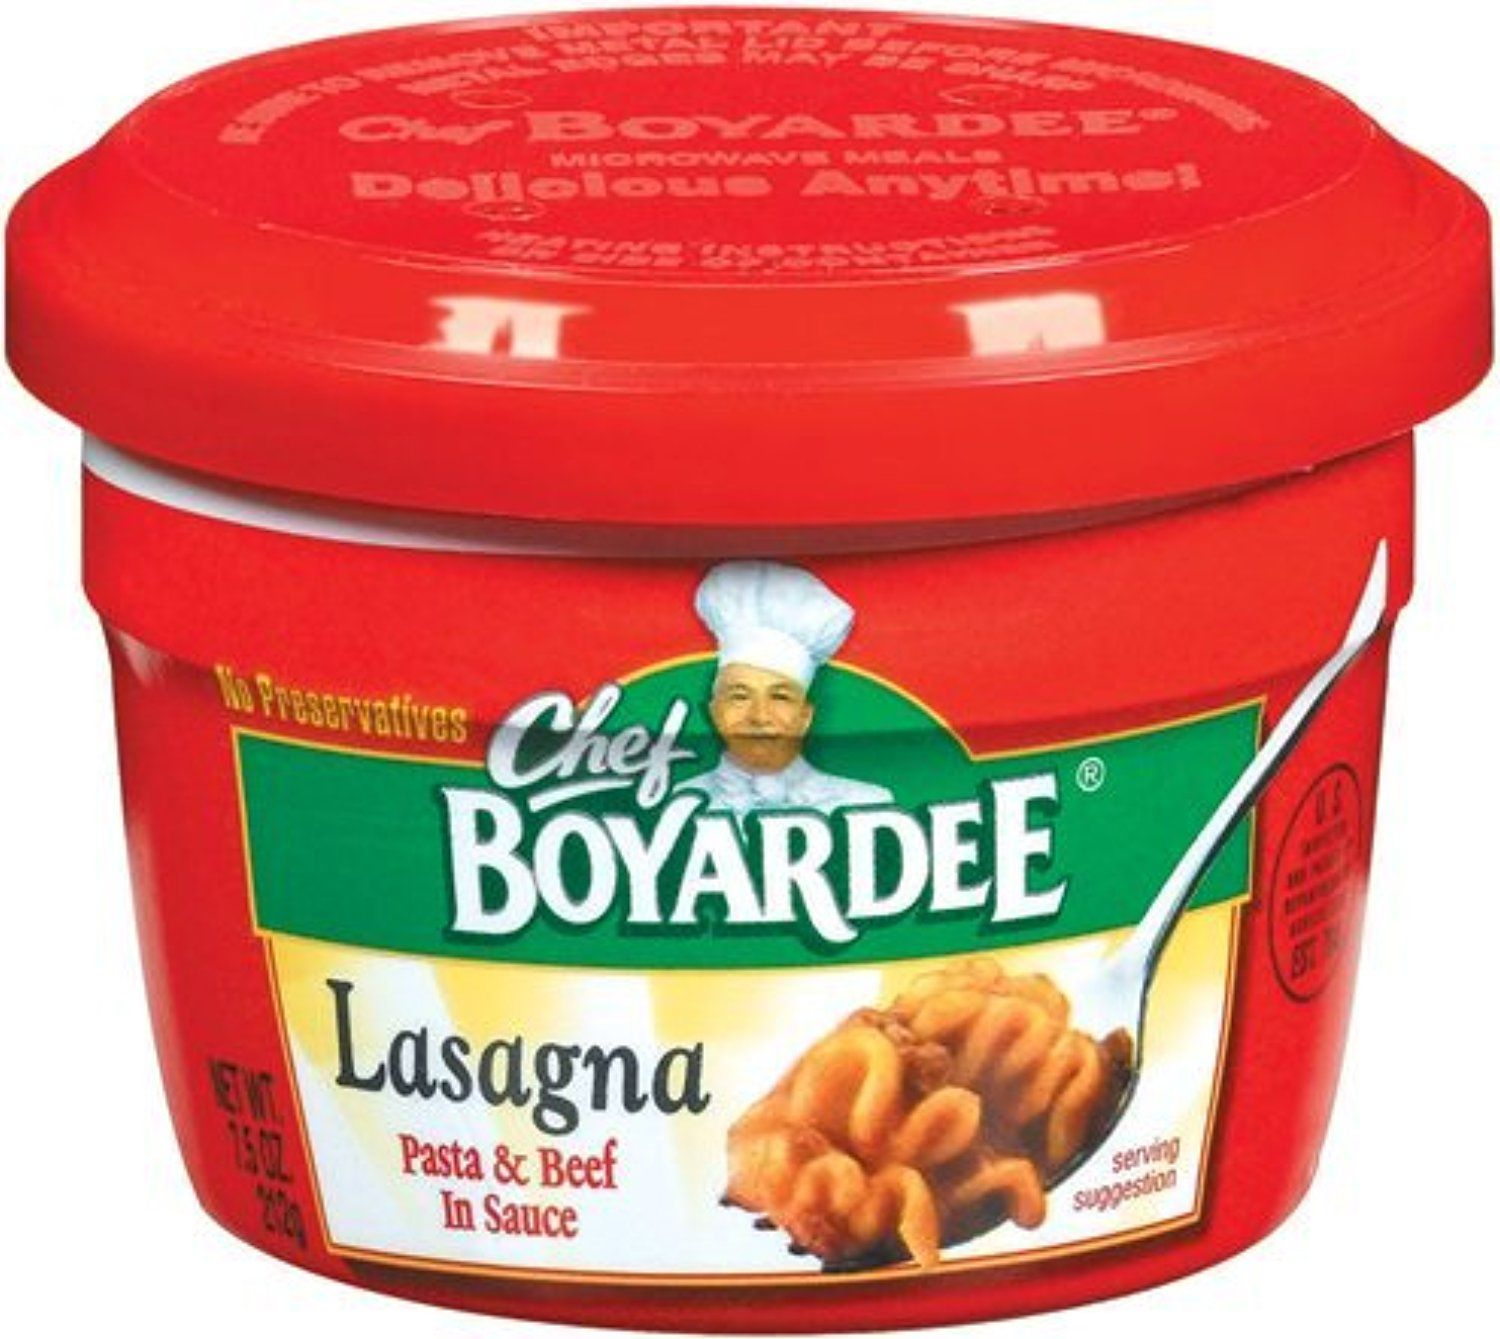 Chef Boyardee Microwave Lasagna In Sauce 7 5 Oz By Awesome Products